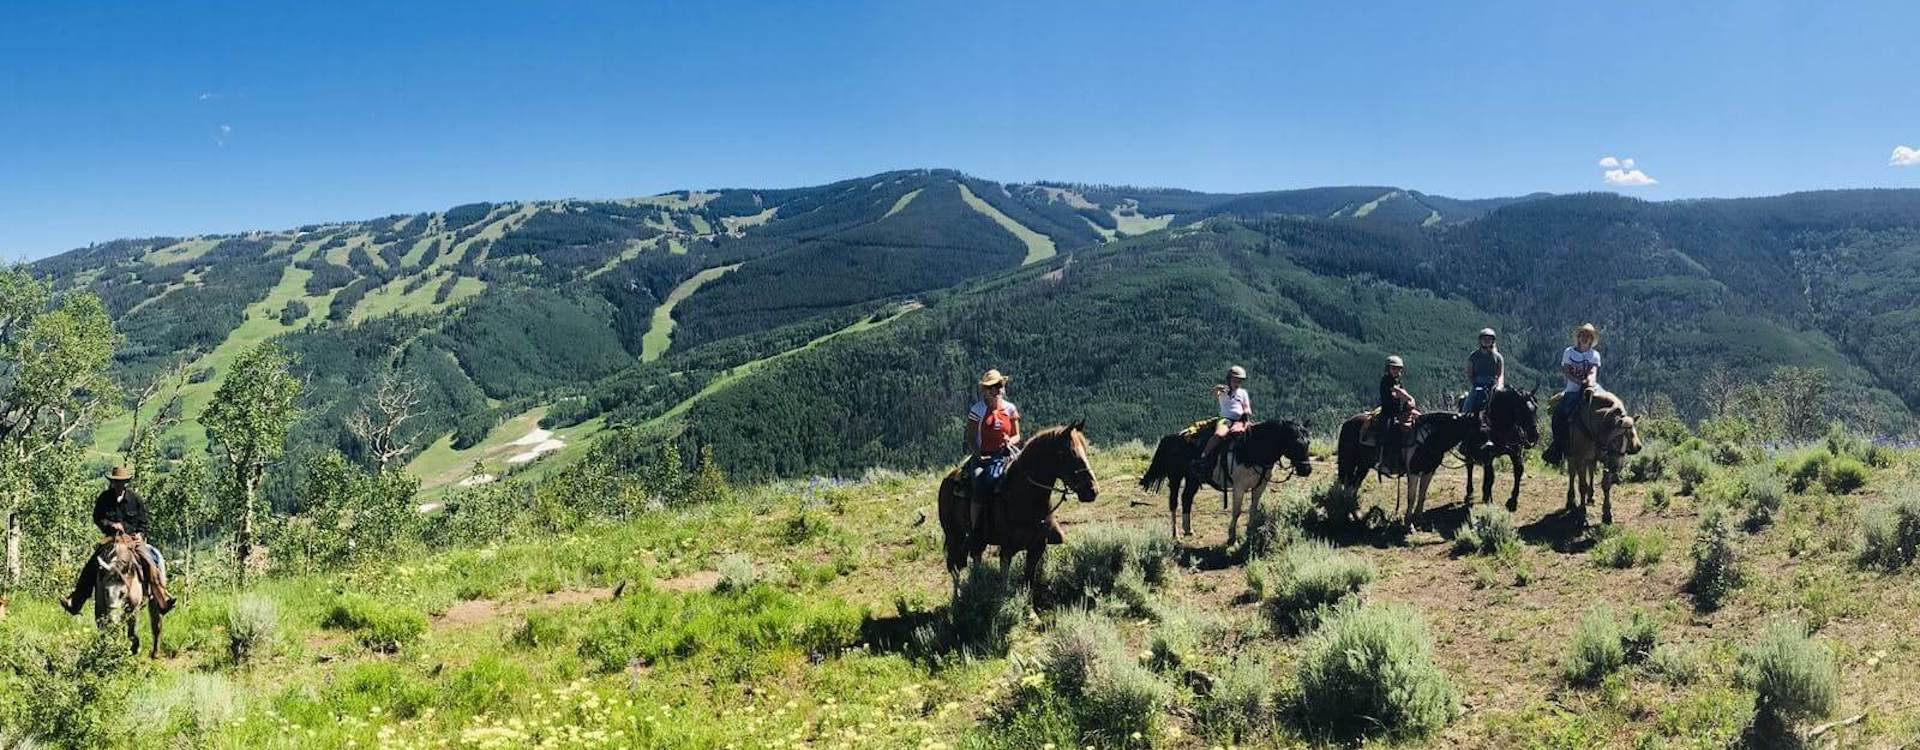 The Ultimate Horseback Riding Tours & Experiences in Vail, Colorado